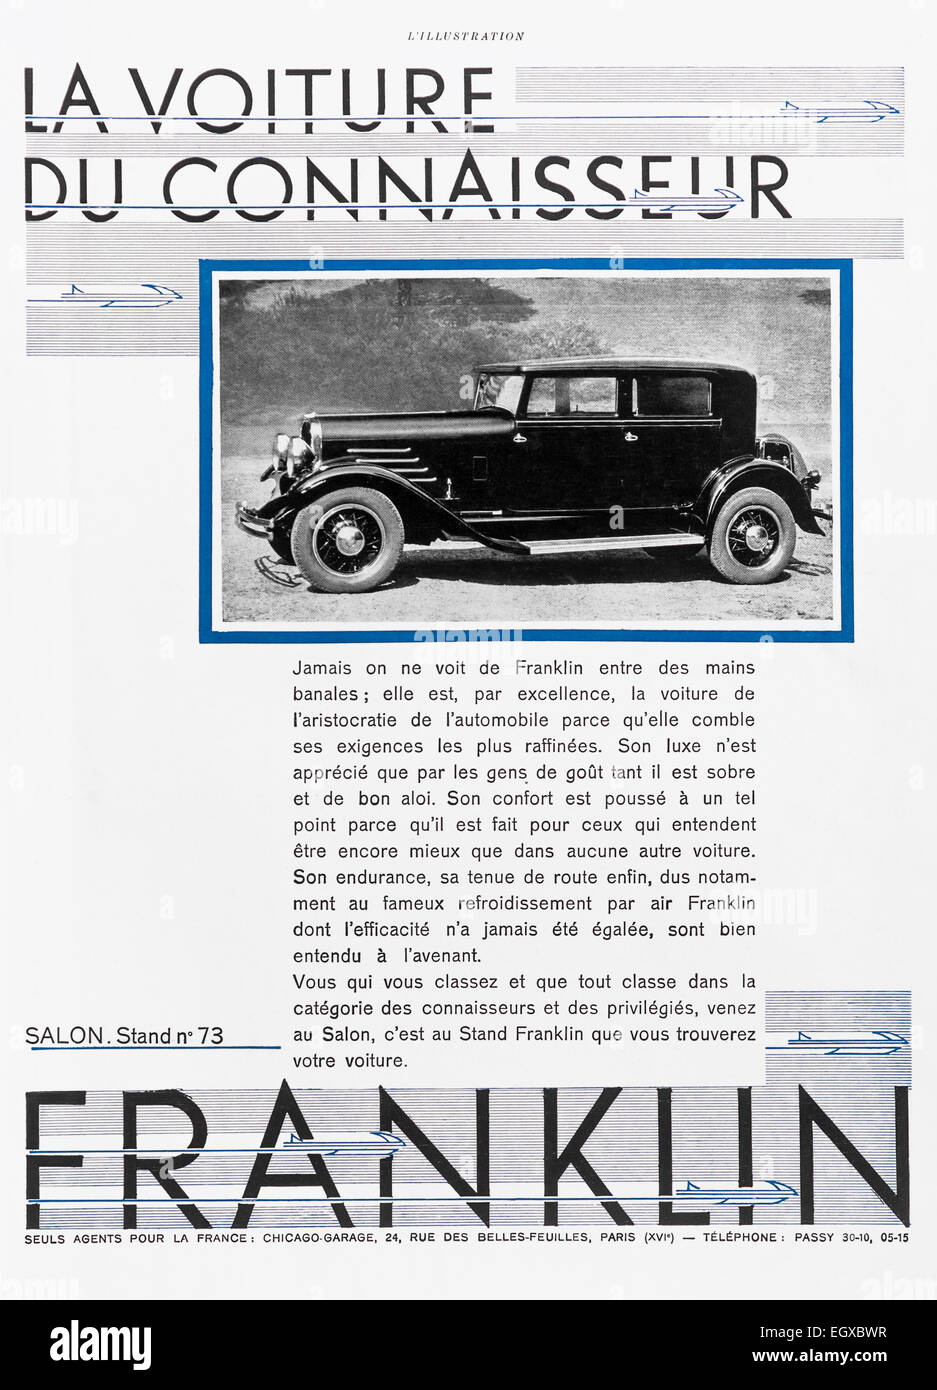 1920s Car Illustration Stock Photos 1927 Buick Wiring Diagram 1930 Advert For Franklin From French Lillustration Magazine